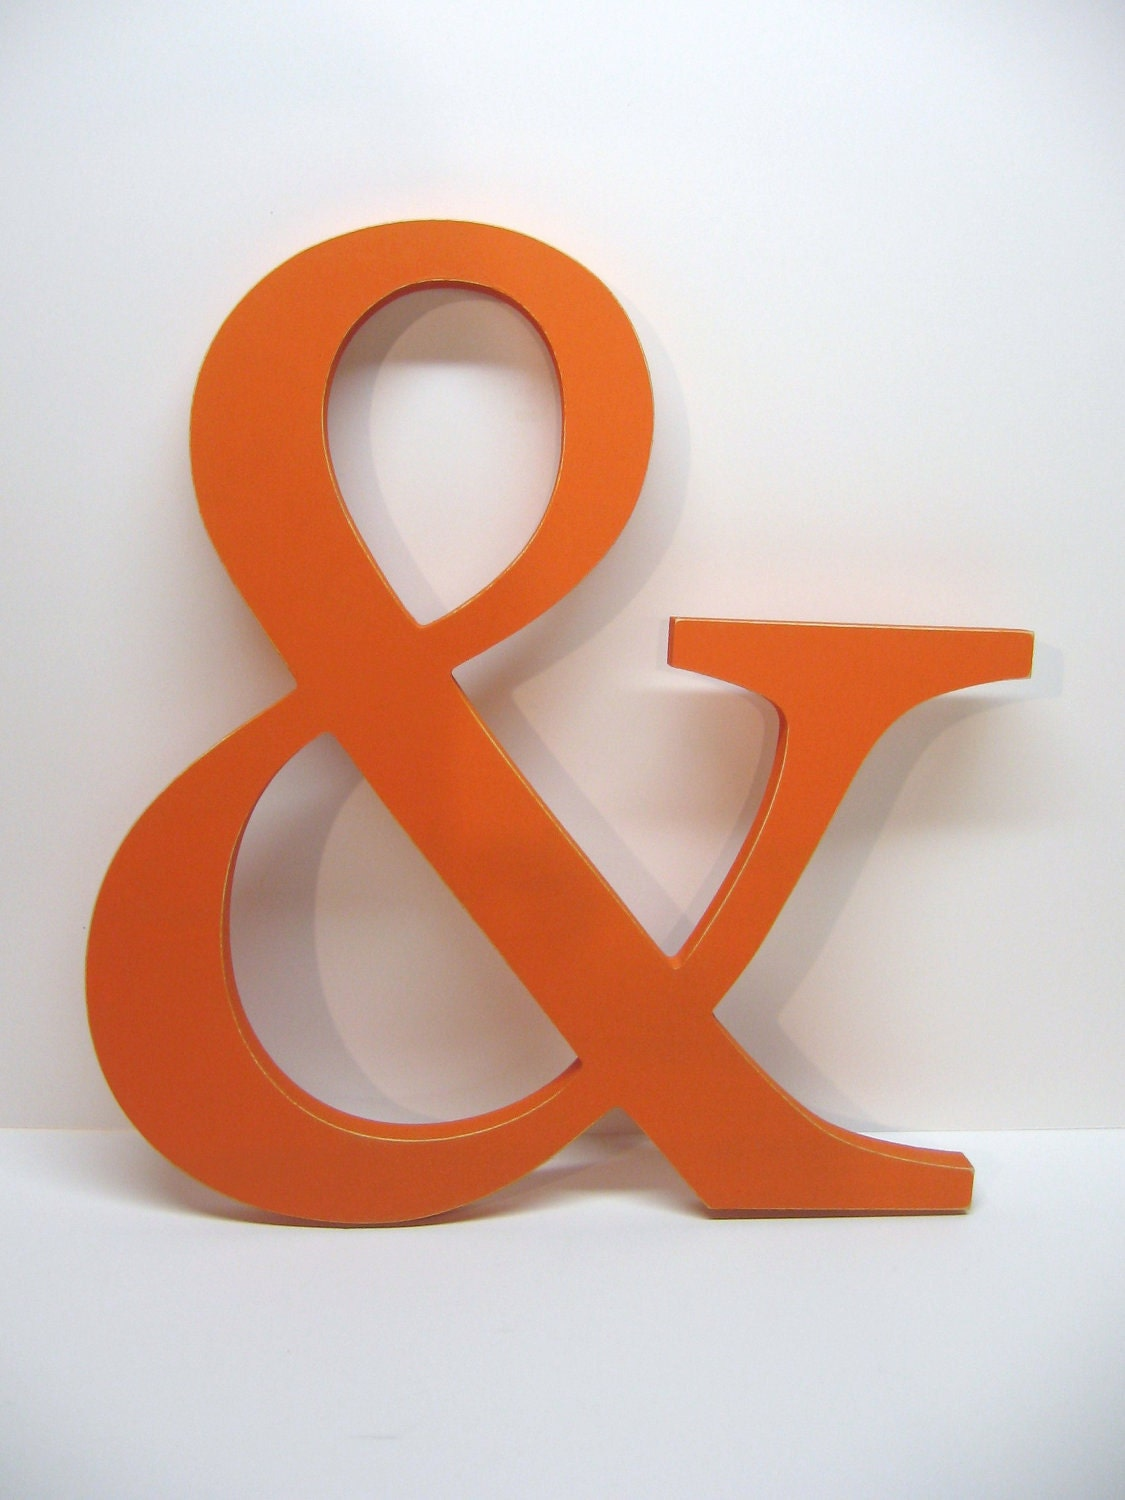 Wood Ampersand Sign 15 Inches Painted Tangerine Orange